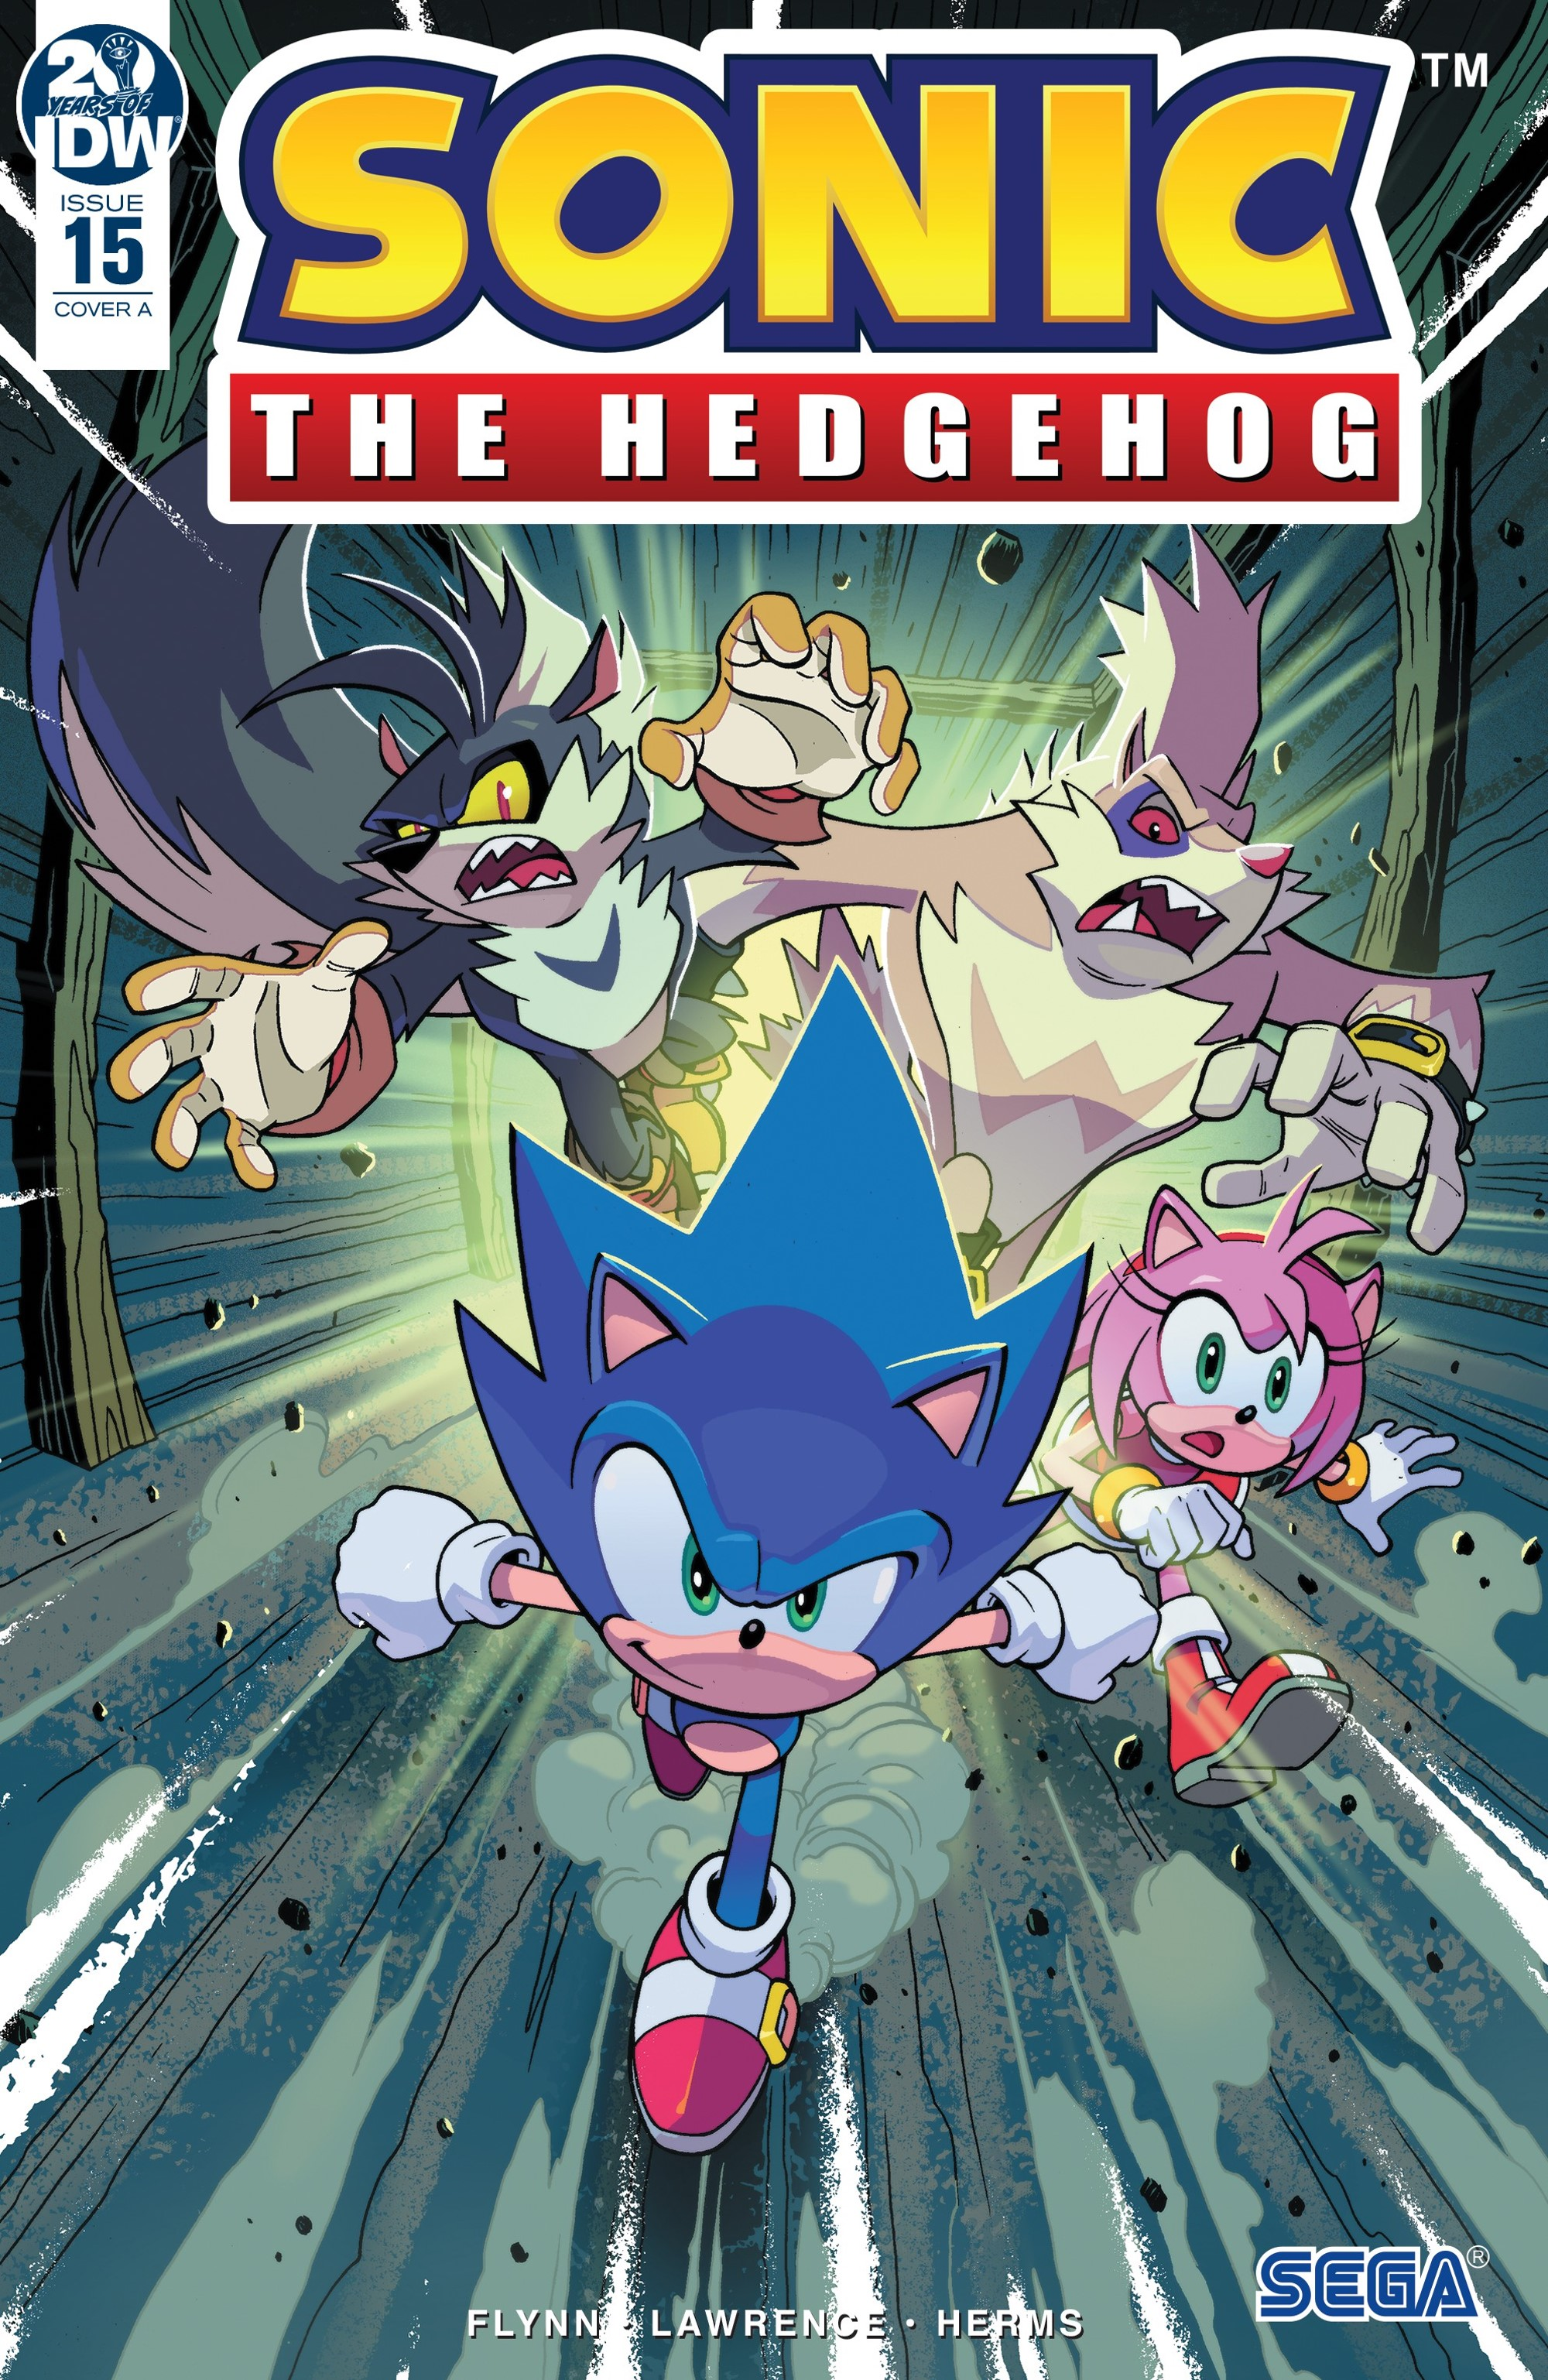 IDW Sonic the Hedgehog Issue 15